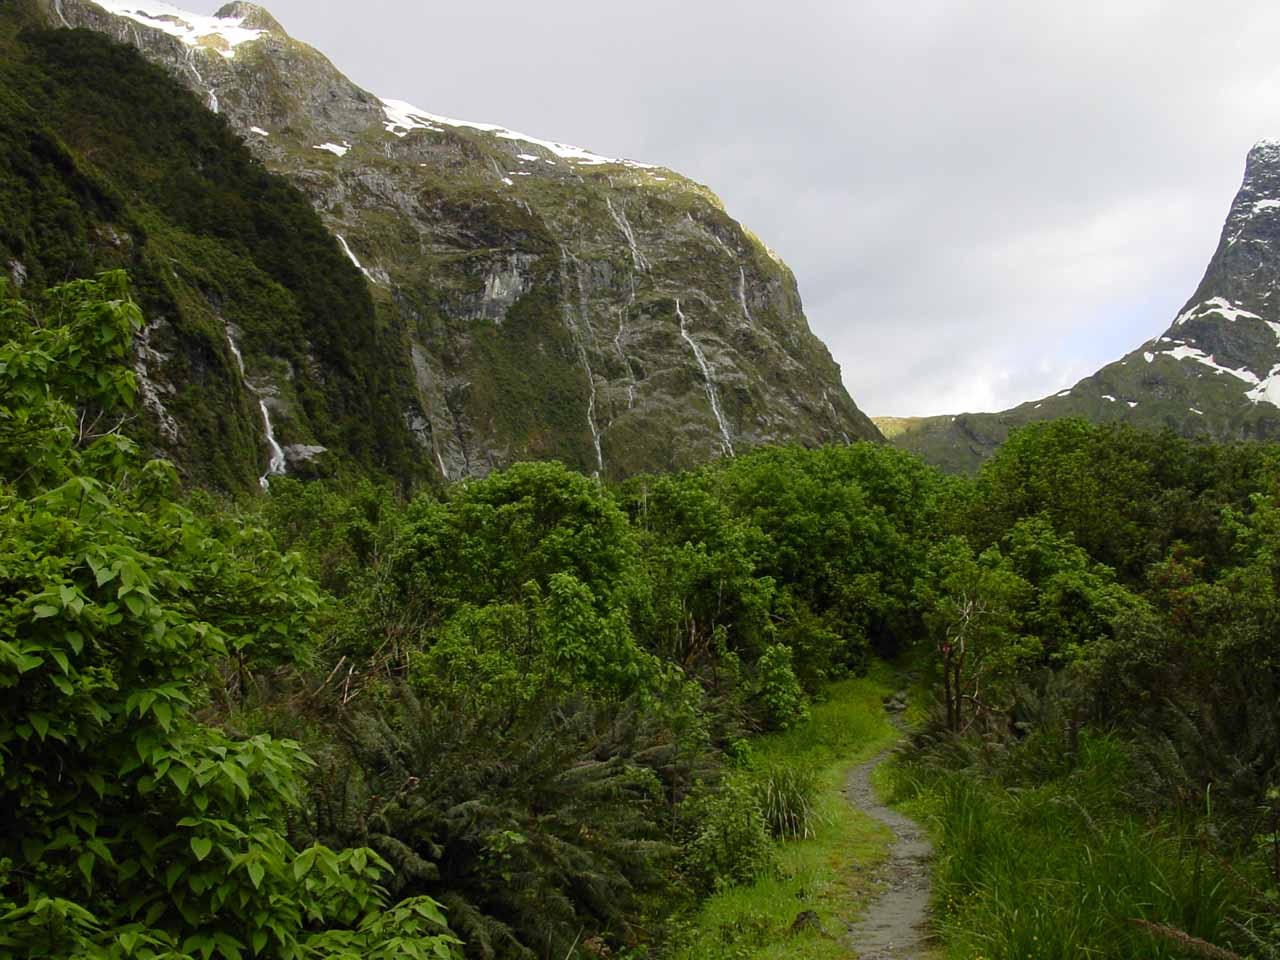 Looking towards Mackinnon Pass and some waterfalls alongside the Milford Track